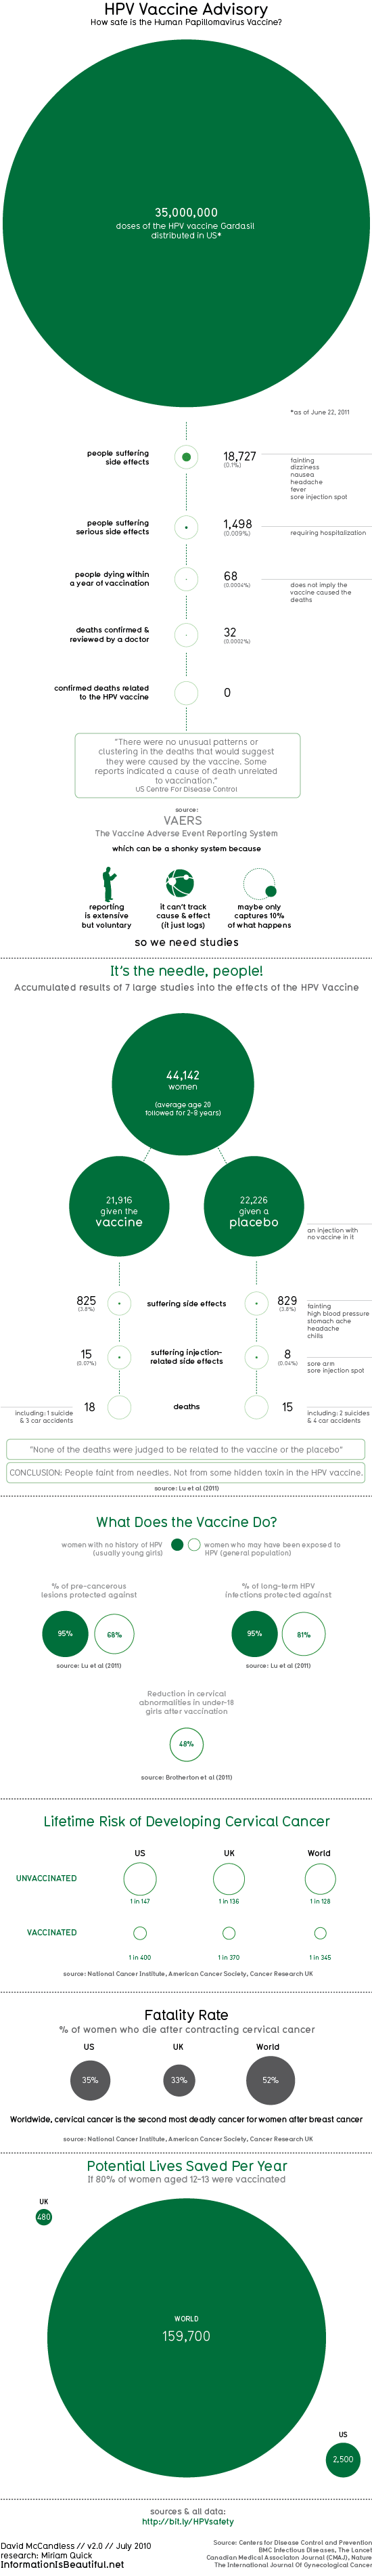 Is the HPV vaccine safe? - Information is Beautiful - David McCandless